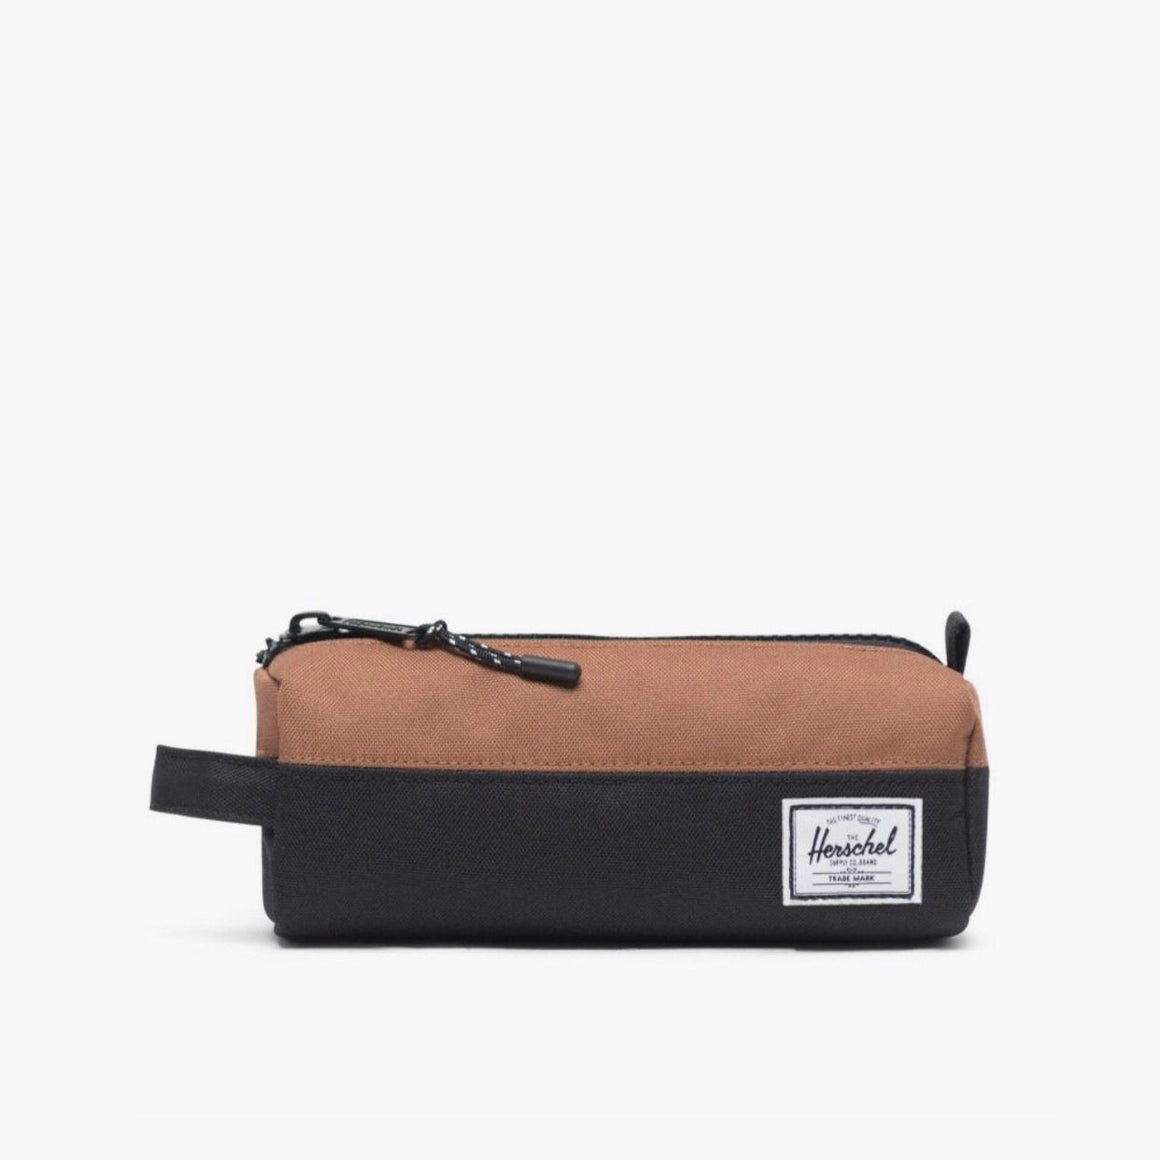 10071-02696-OS -Herschel Settlement Case - Black/Saddle Brown Pencil Case Herschel